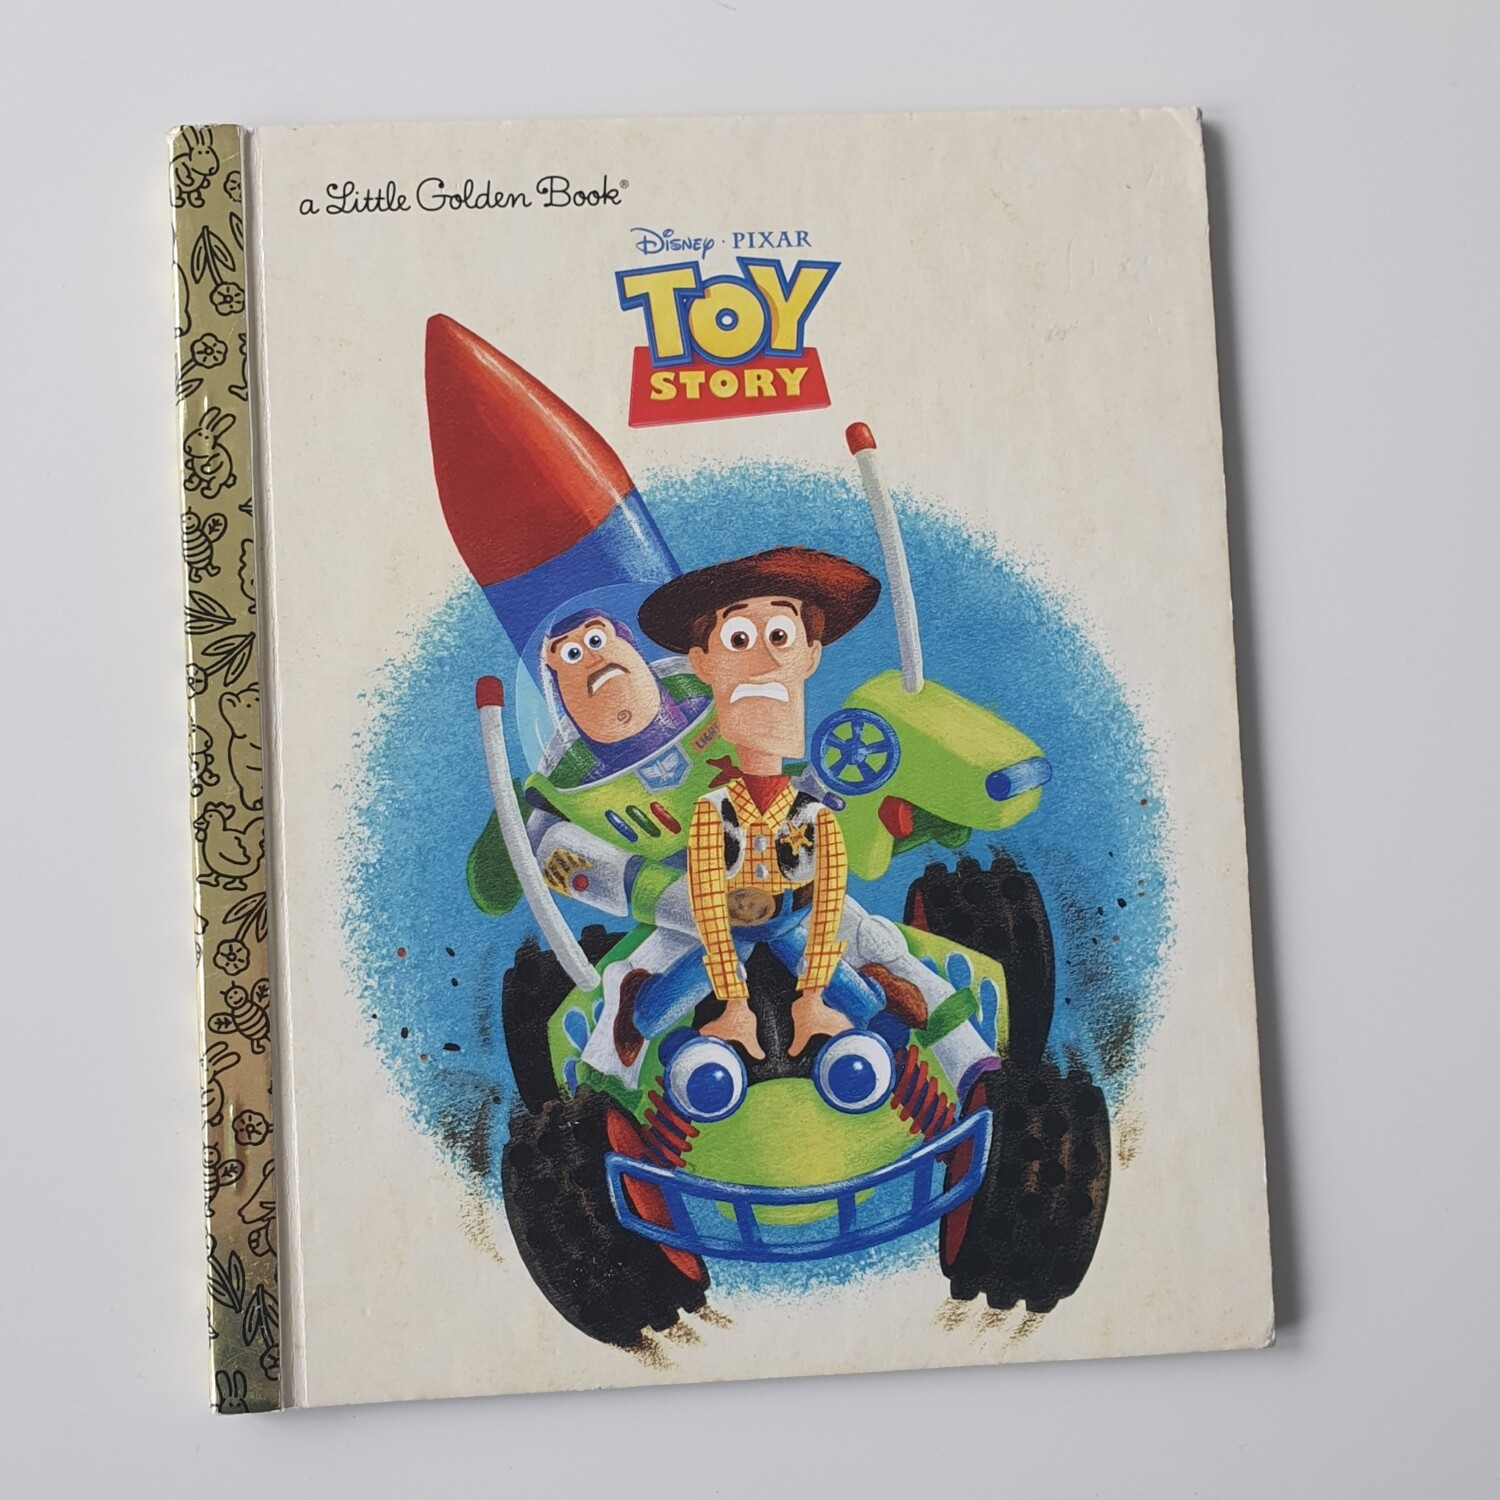 Toy Story  Notebook - board book will come with metal book corners included, no original pages